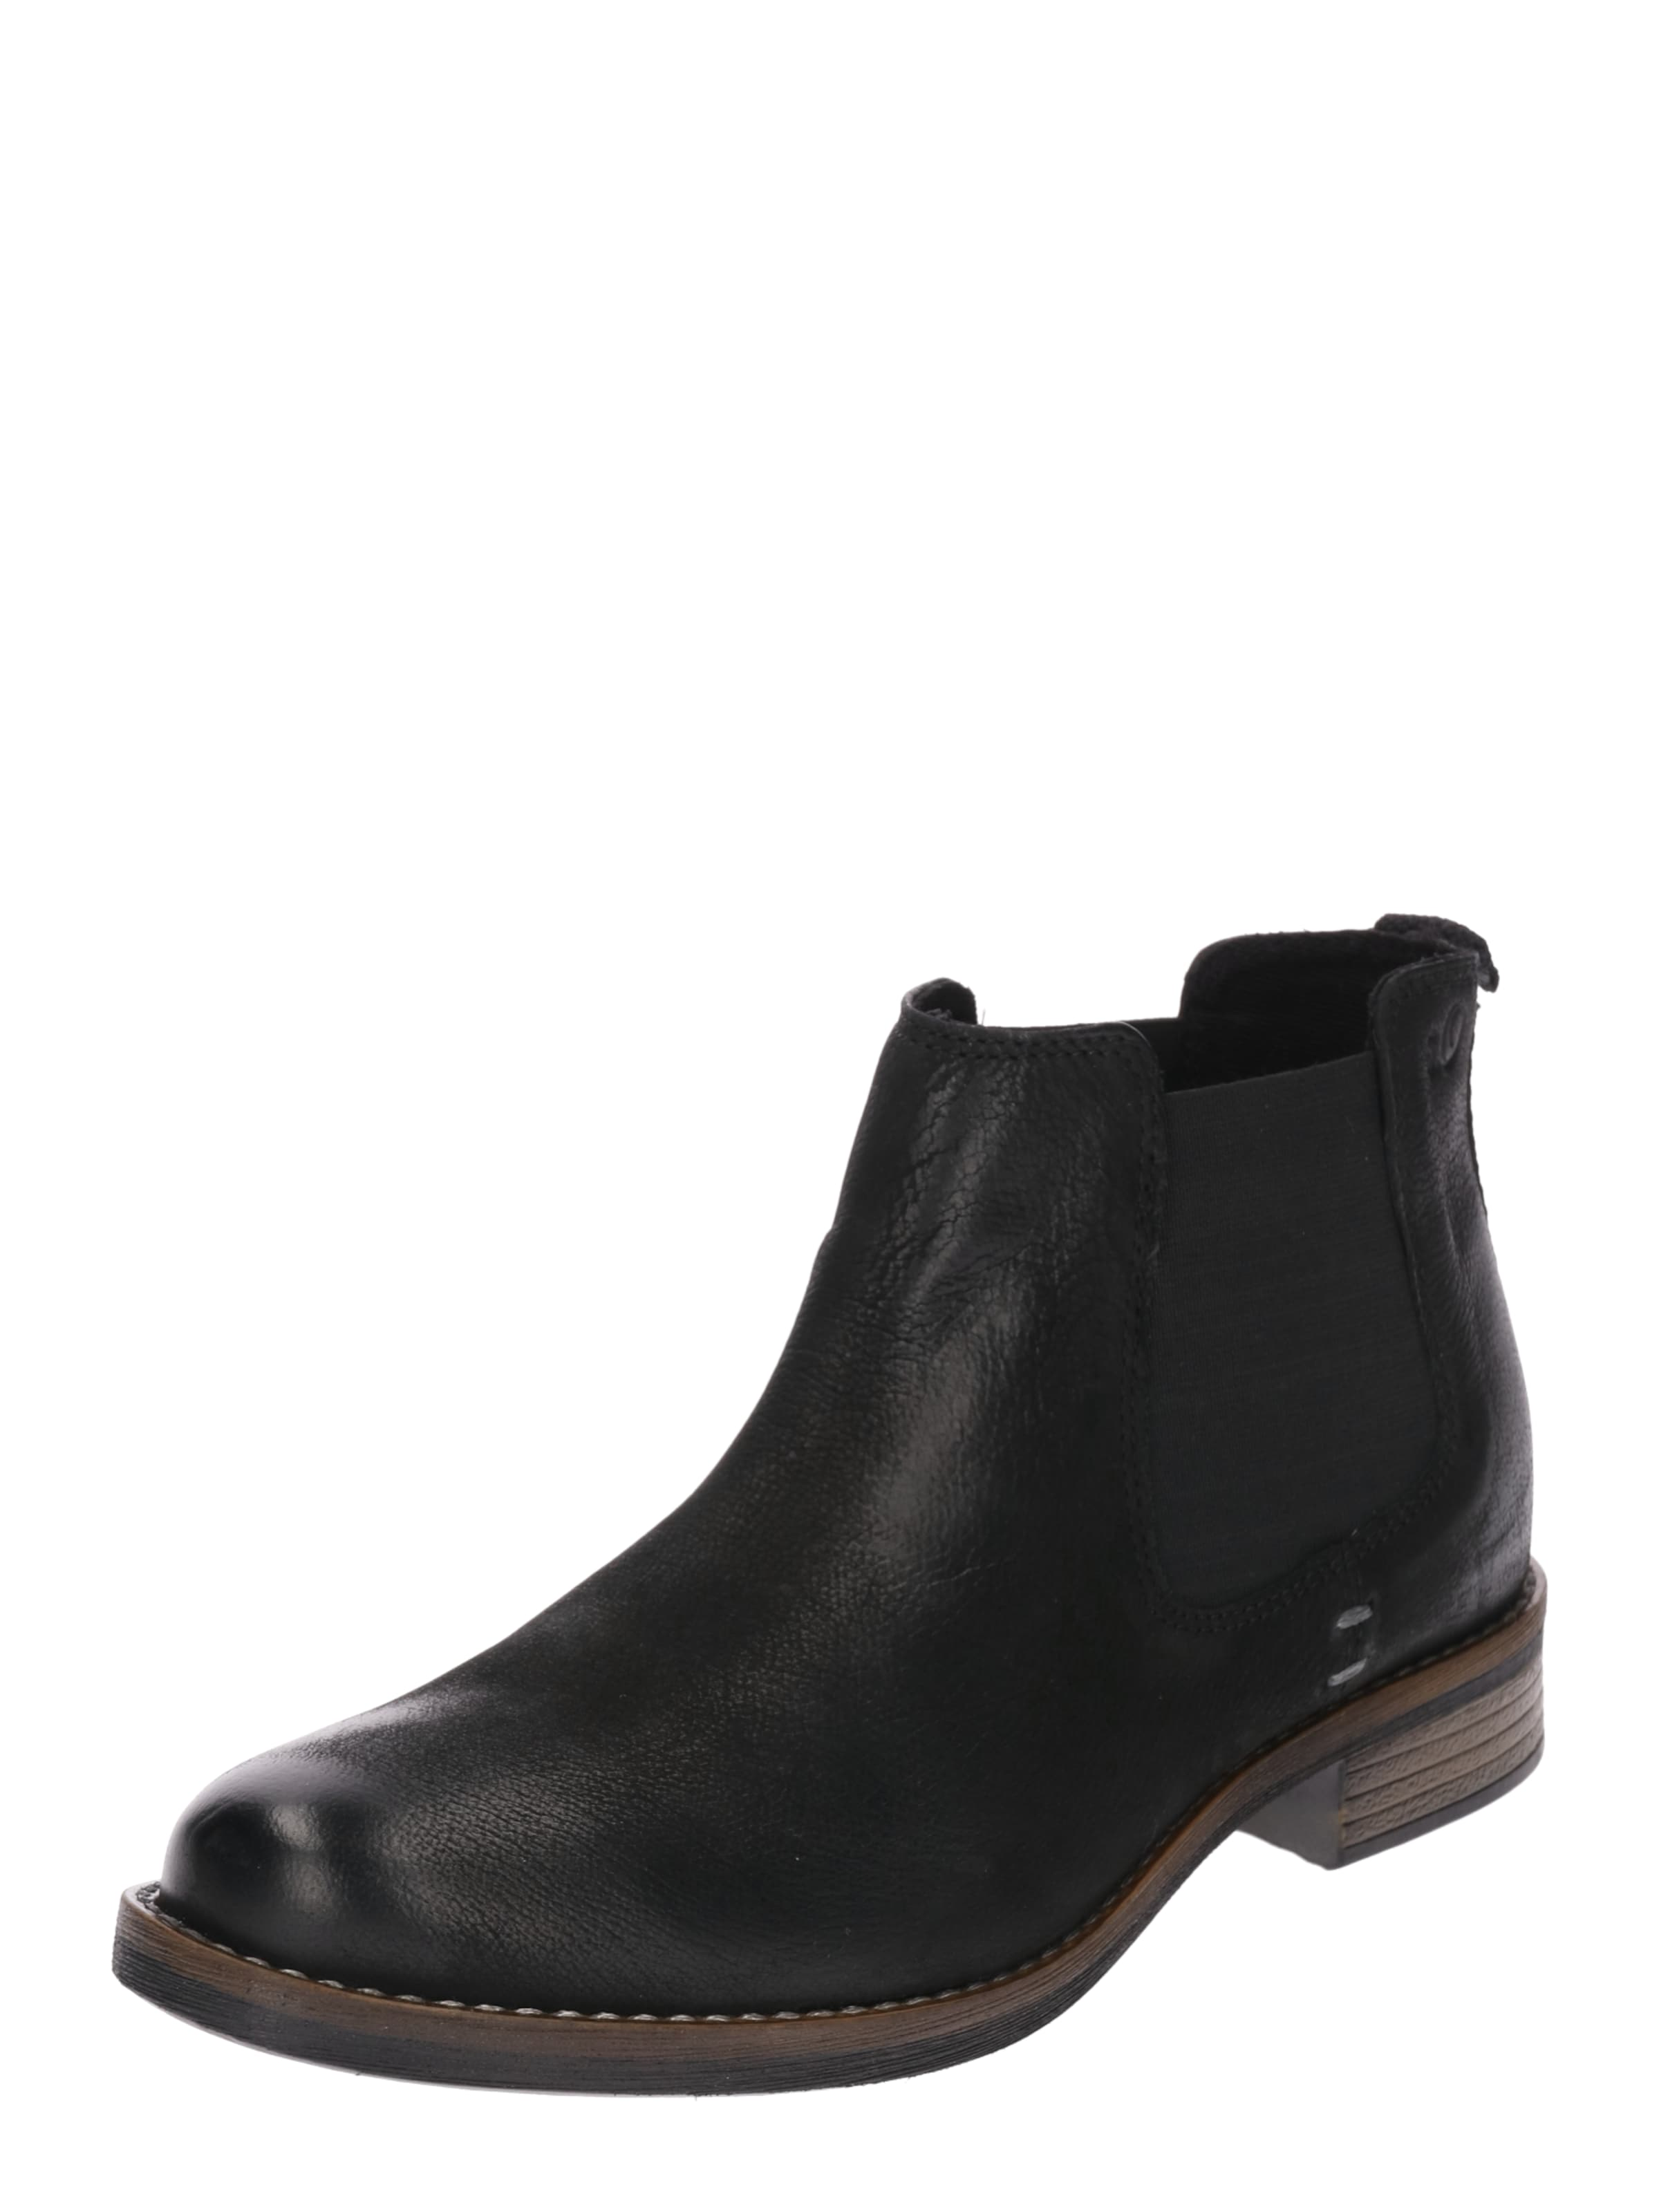 S.Oliver RED LABEL Chelsea Boot 'classy' schwarz ORG5A83q5